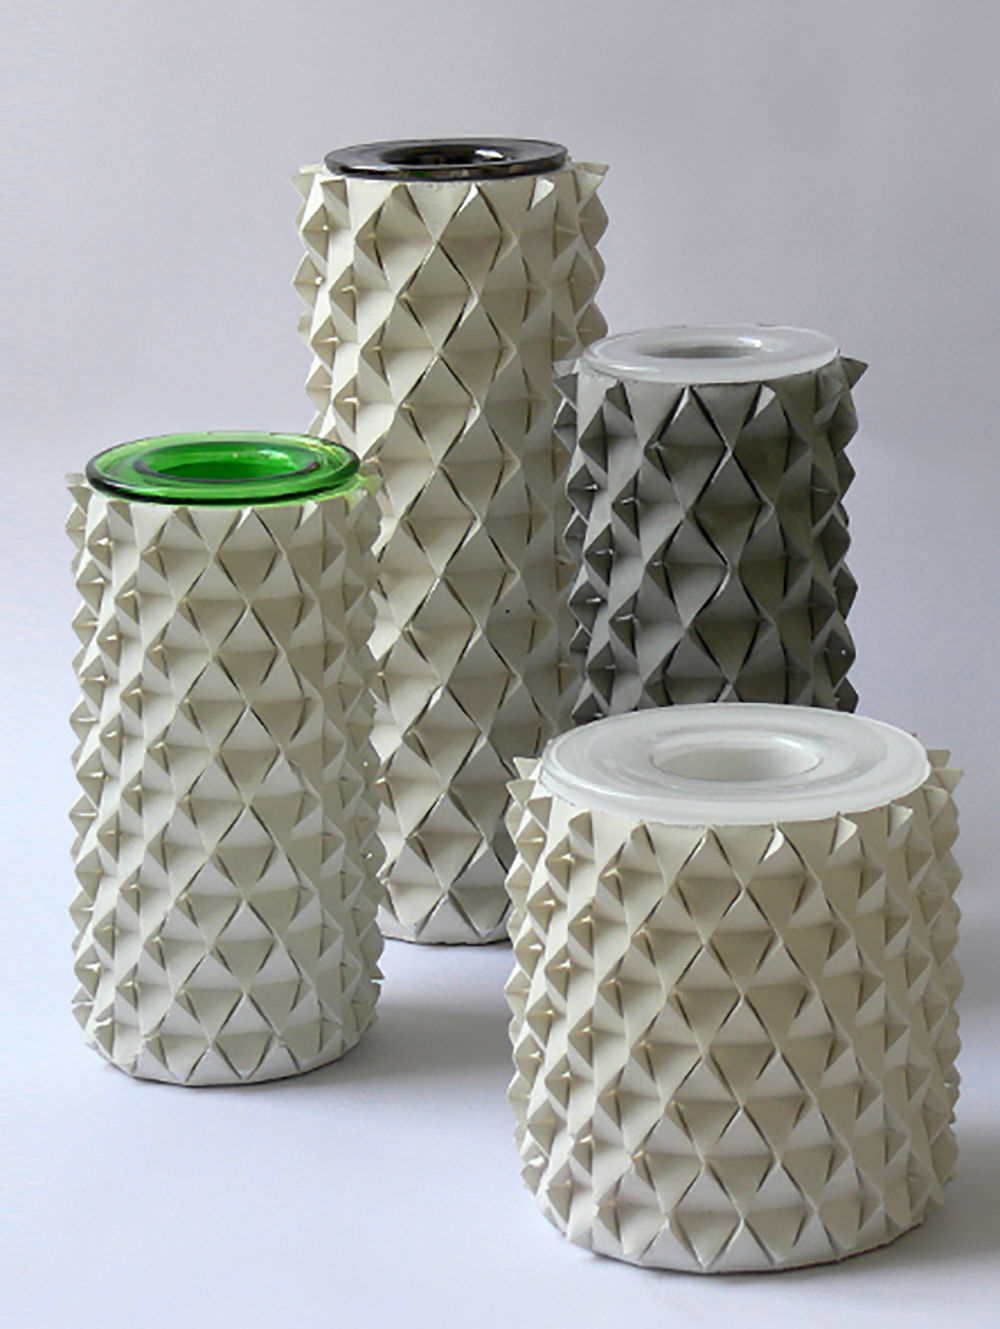 Beton Vase vase originelles design beton palms talent design icons